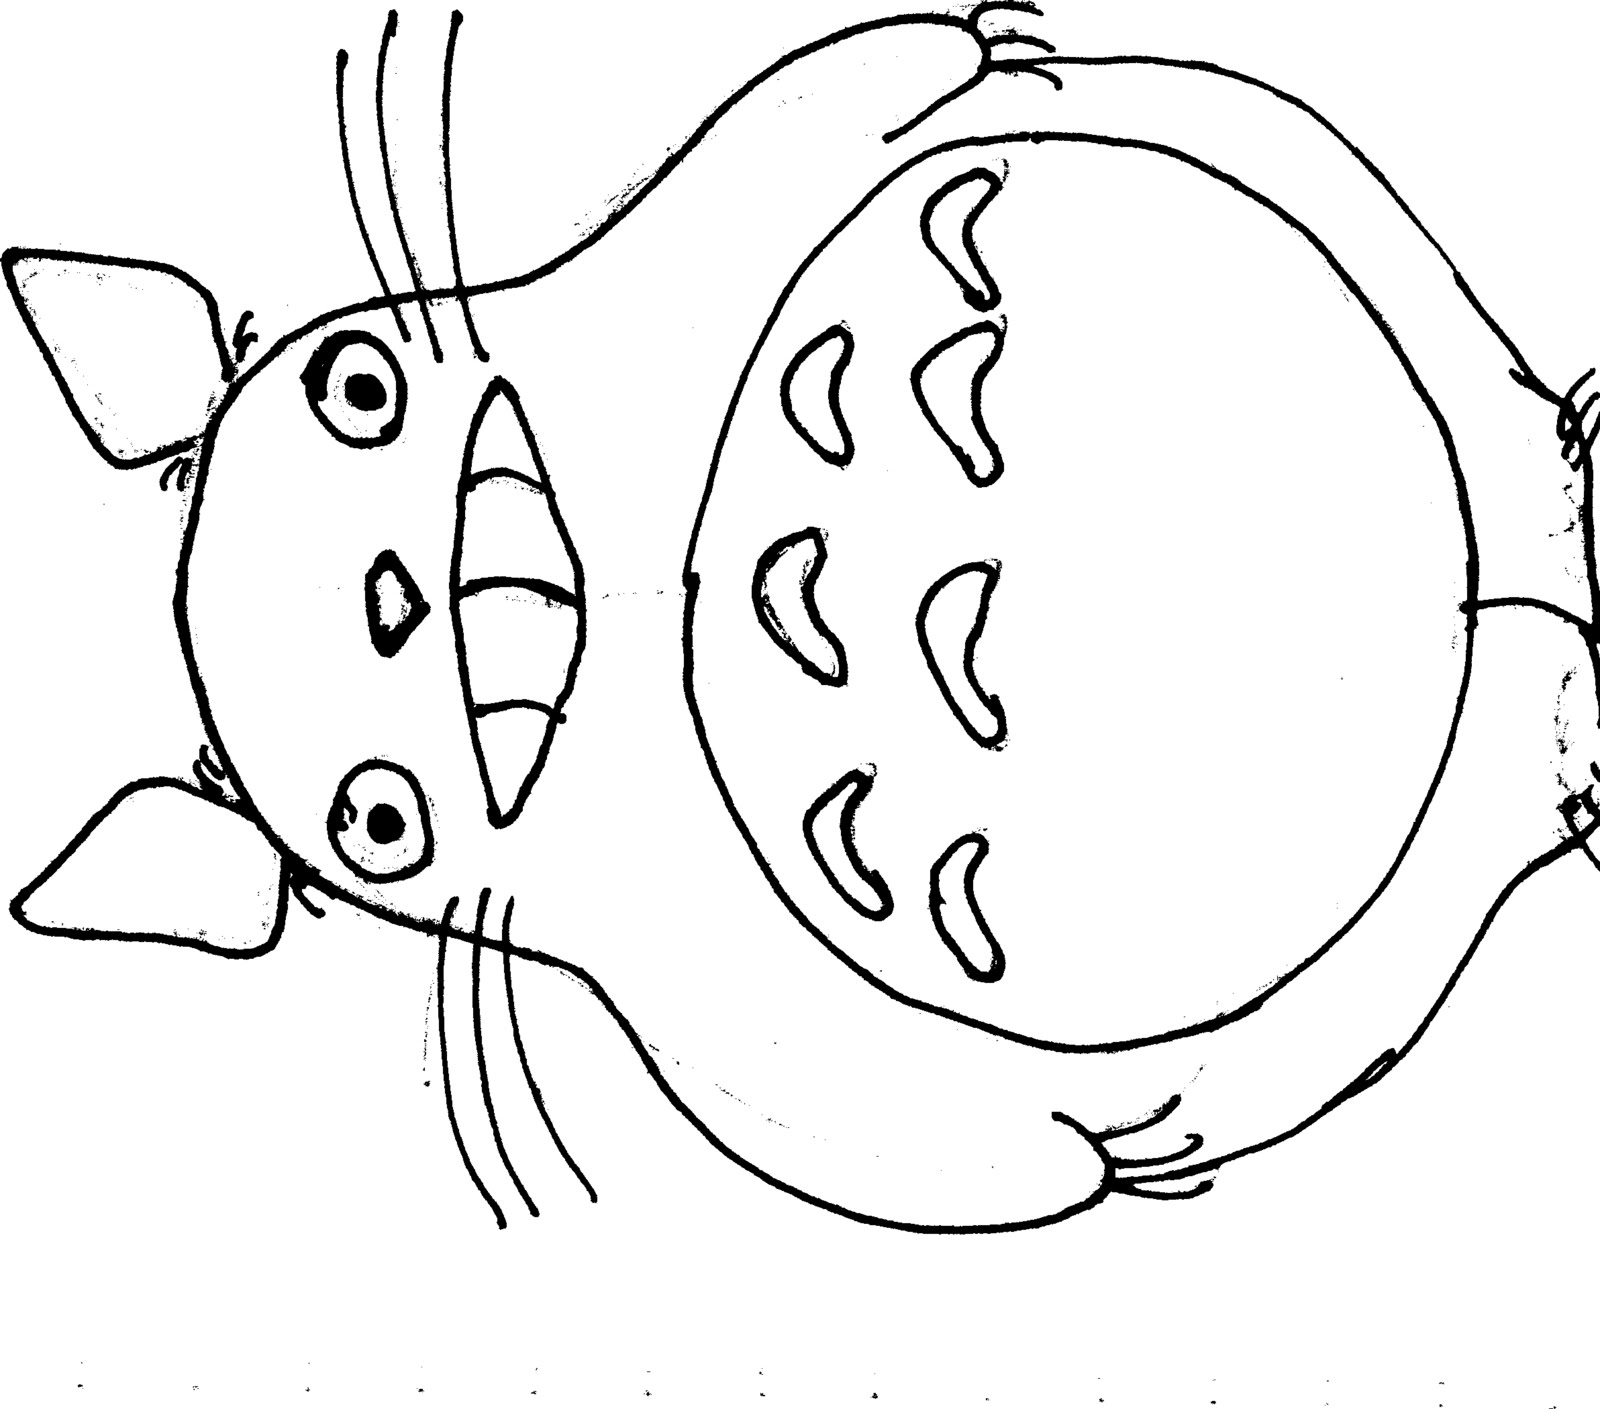 Totoro, My neighbor totoro and Coloring pages on Pinterest